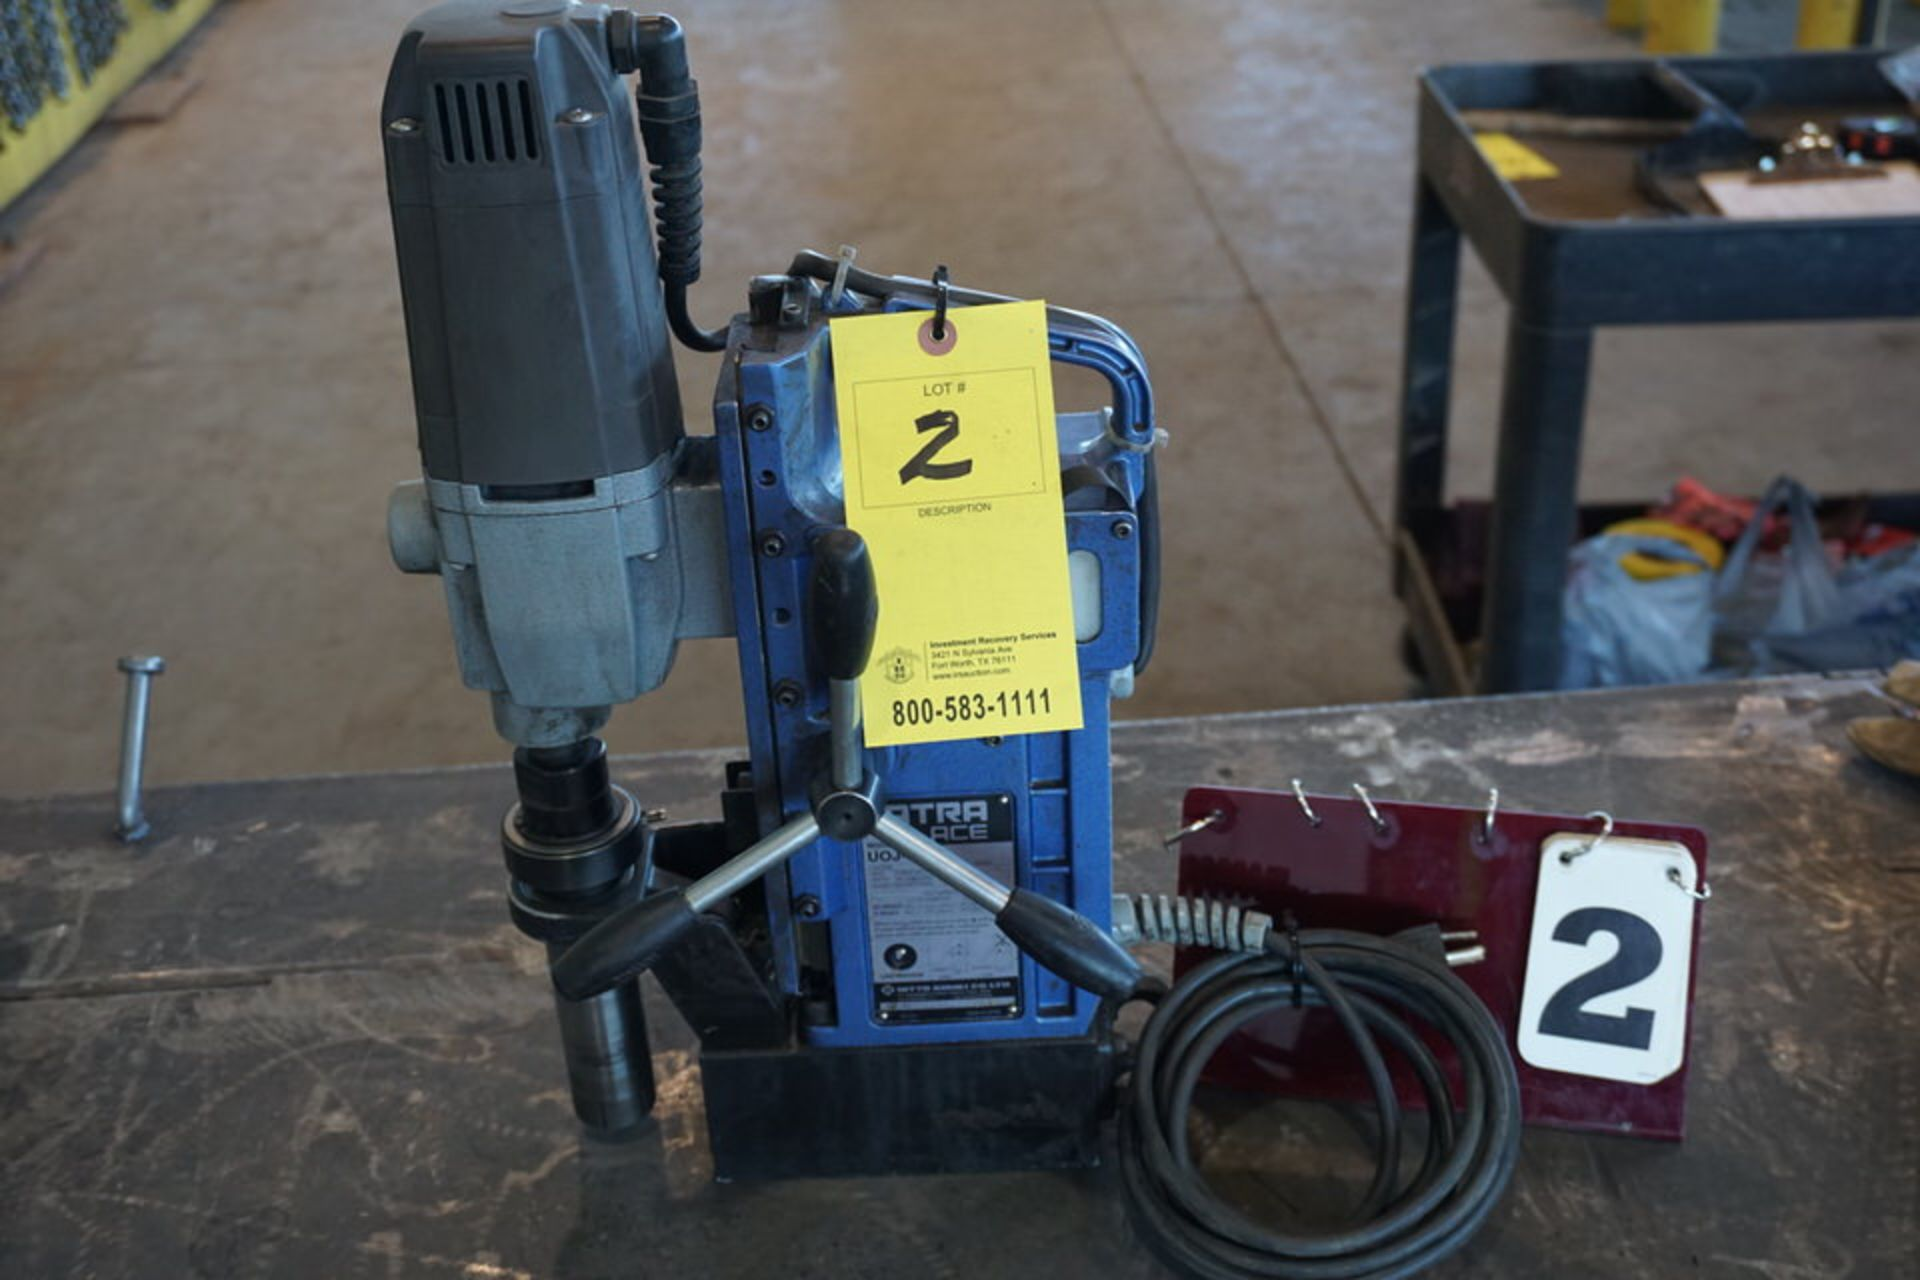 Lot 2 - ATRA ACE MAGNETIC DRILL, MDL: VOJ-5500